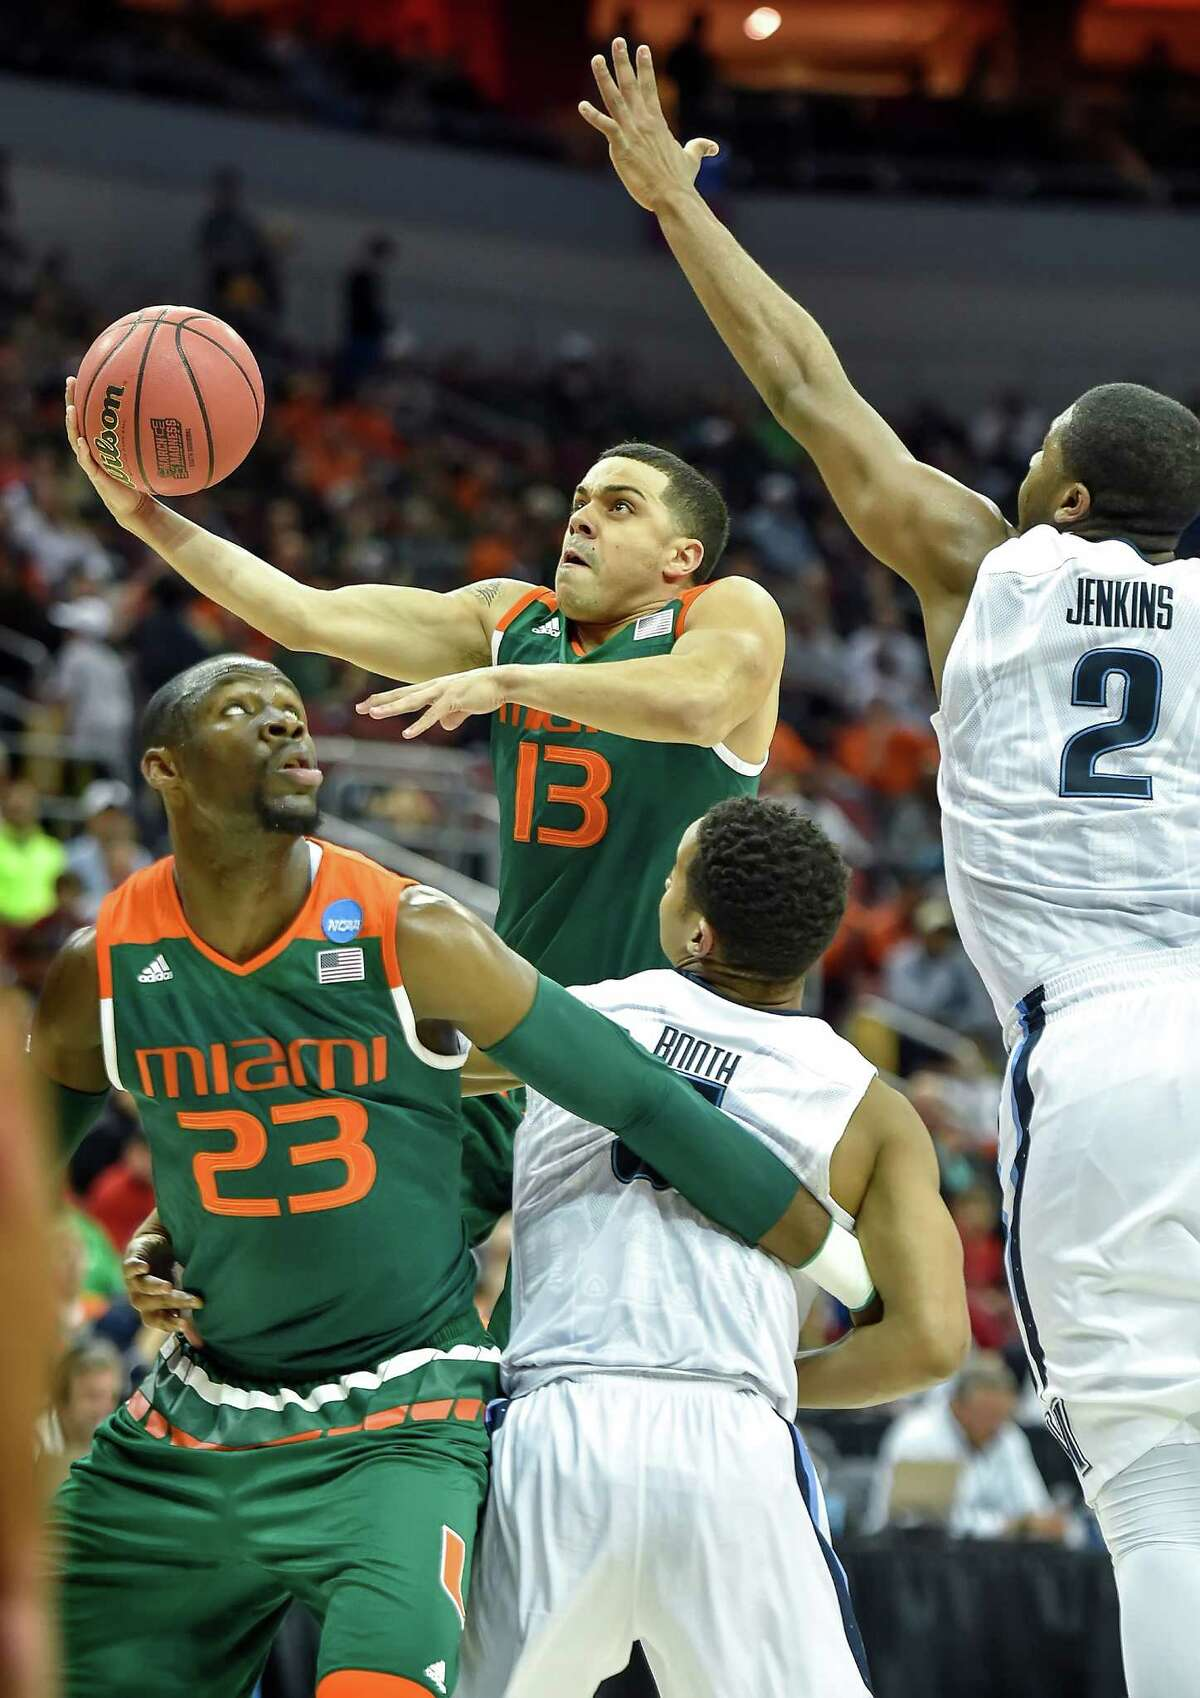 Miami's Angel Rodriguez (13) drives to the basket against Villanova's Phil Booth (5) in the first half during a Sweet 16 matchup in the NCAA Tournament's South region at the KFC Yum! Center in Louisville, Ky., on Thursday, March 24, 2016.